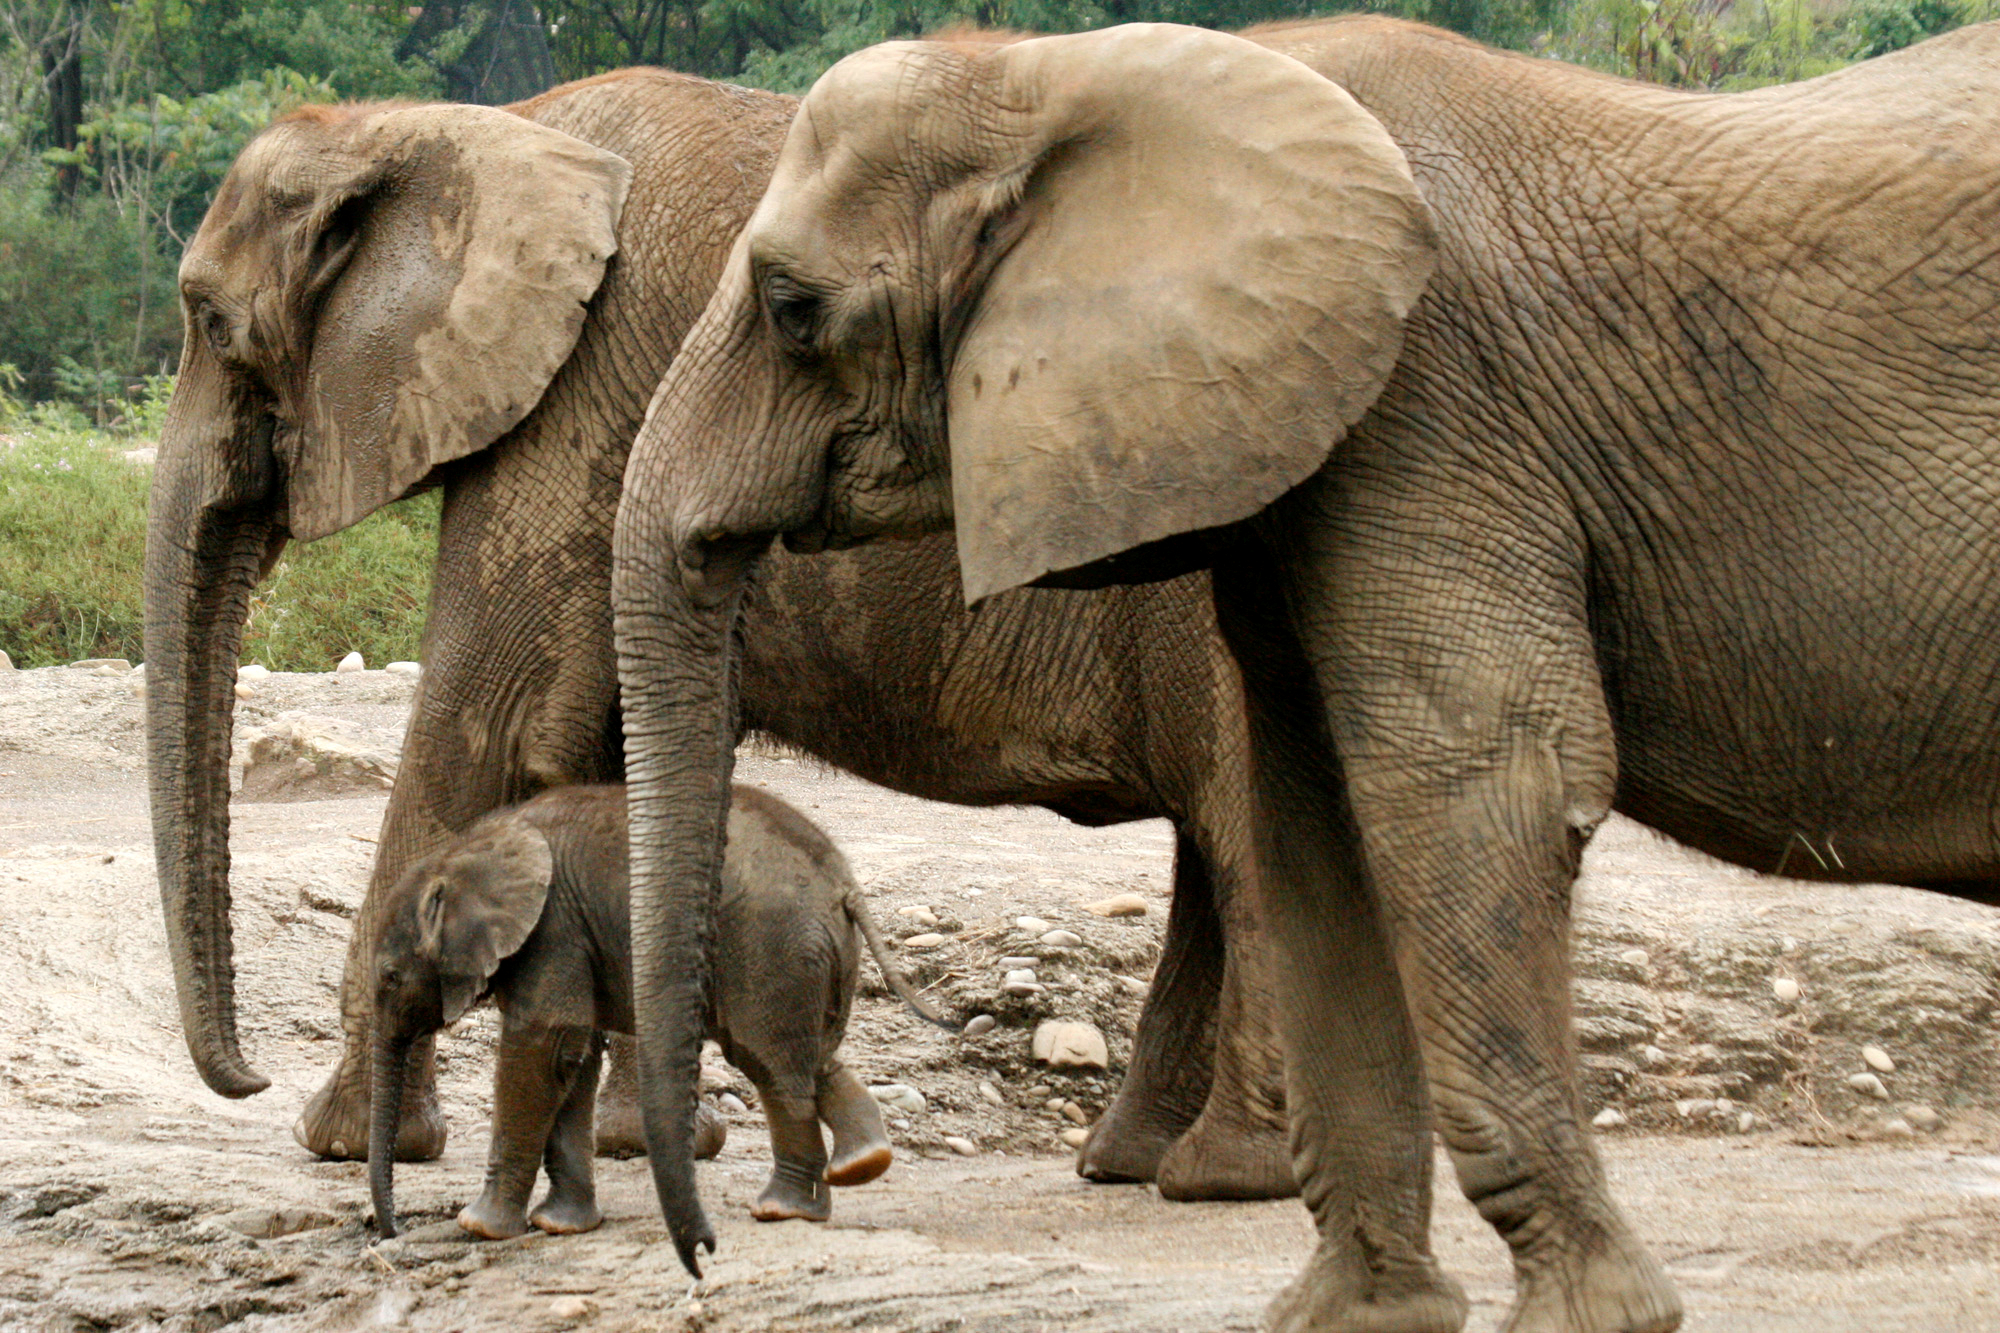 living like weasels by annie dillard animal rights group complains about pittsburgh zoo elephants